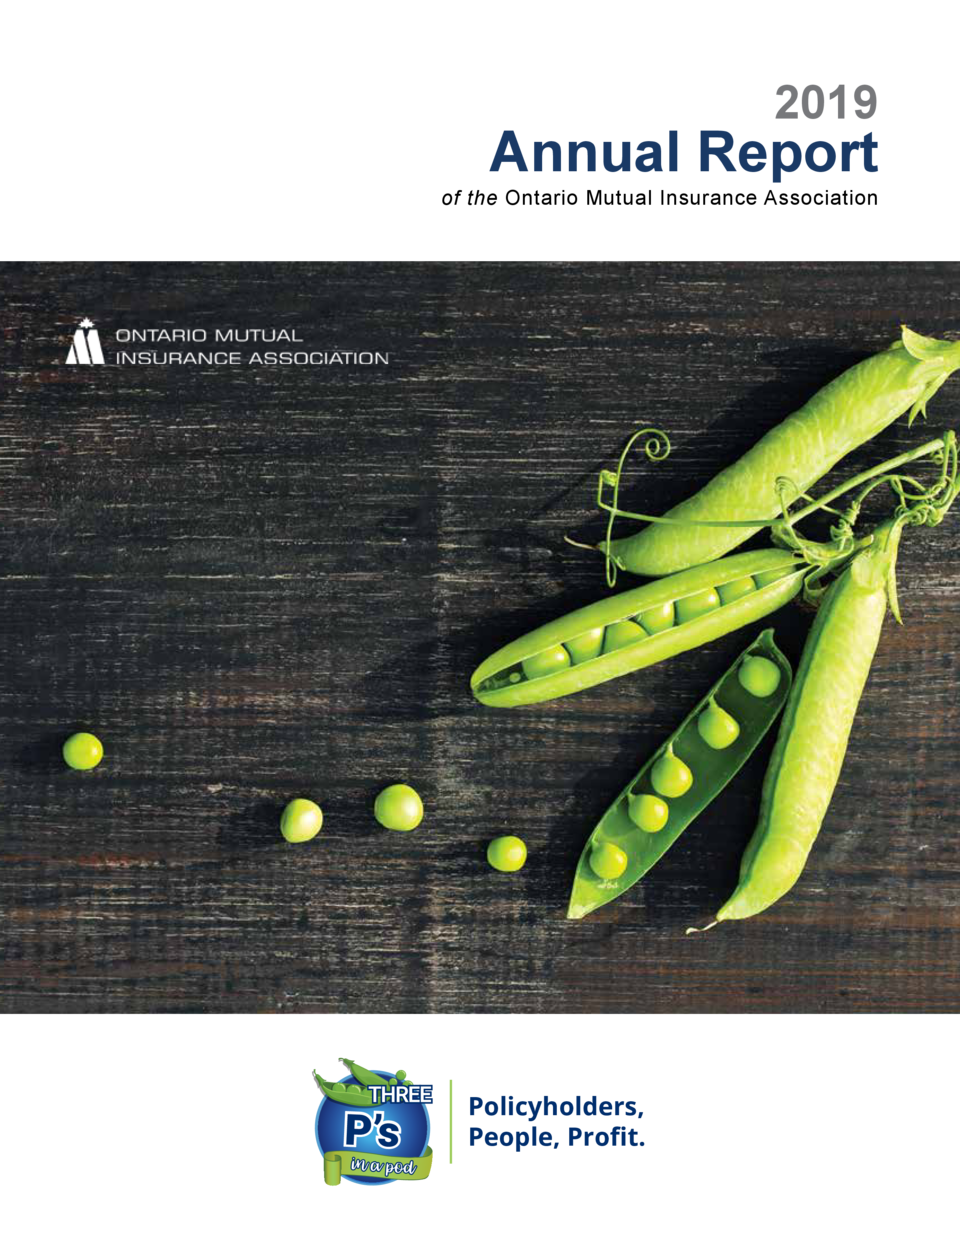 2019  Annual Report  of the Ontario Mutual Insurance Association  Policyholders, People, Pro   t.